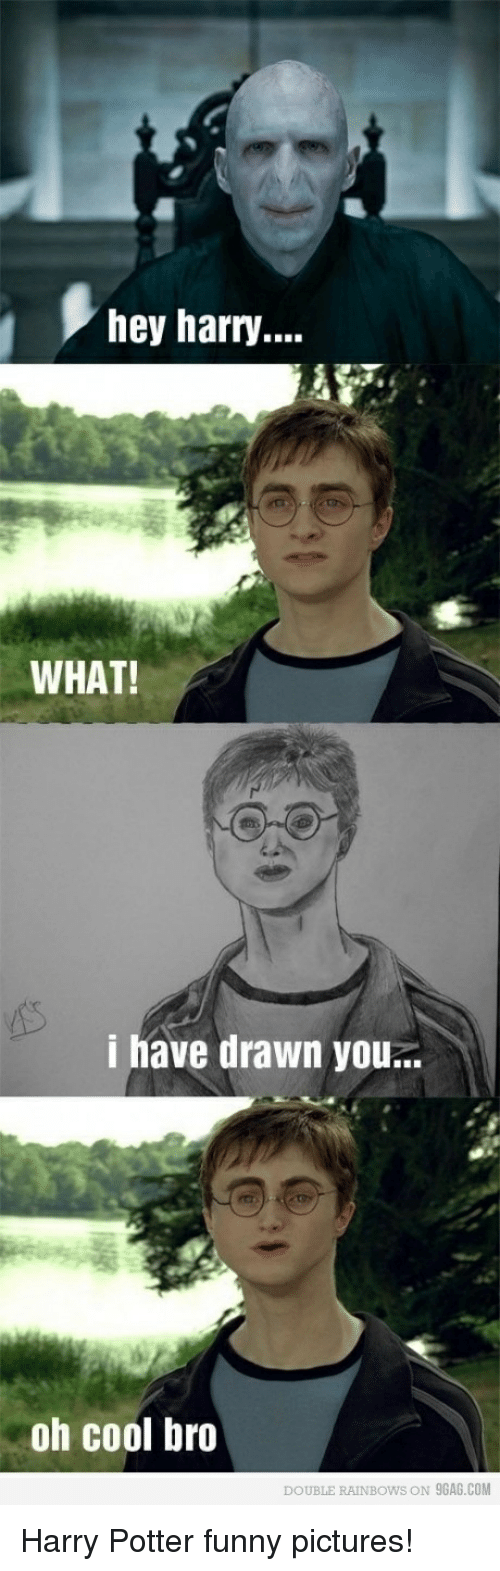 rainbows: hey harry...  WHAT!  i have drawn you..  oh cool bro  DOUBLE RAINBOWS ON 9GAG.COM Harry Potter funny pictures!